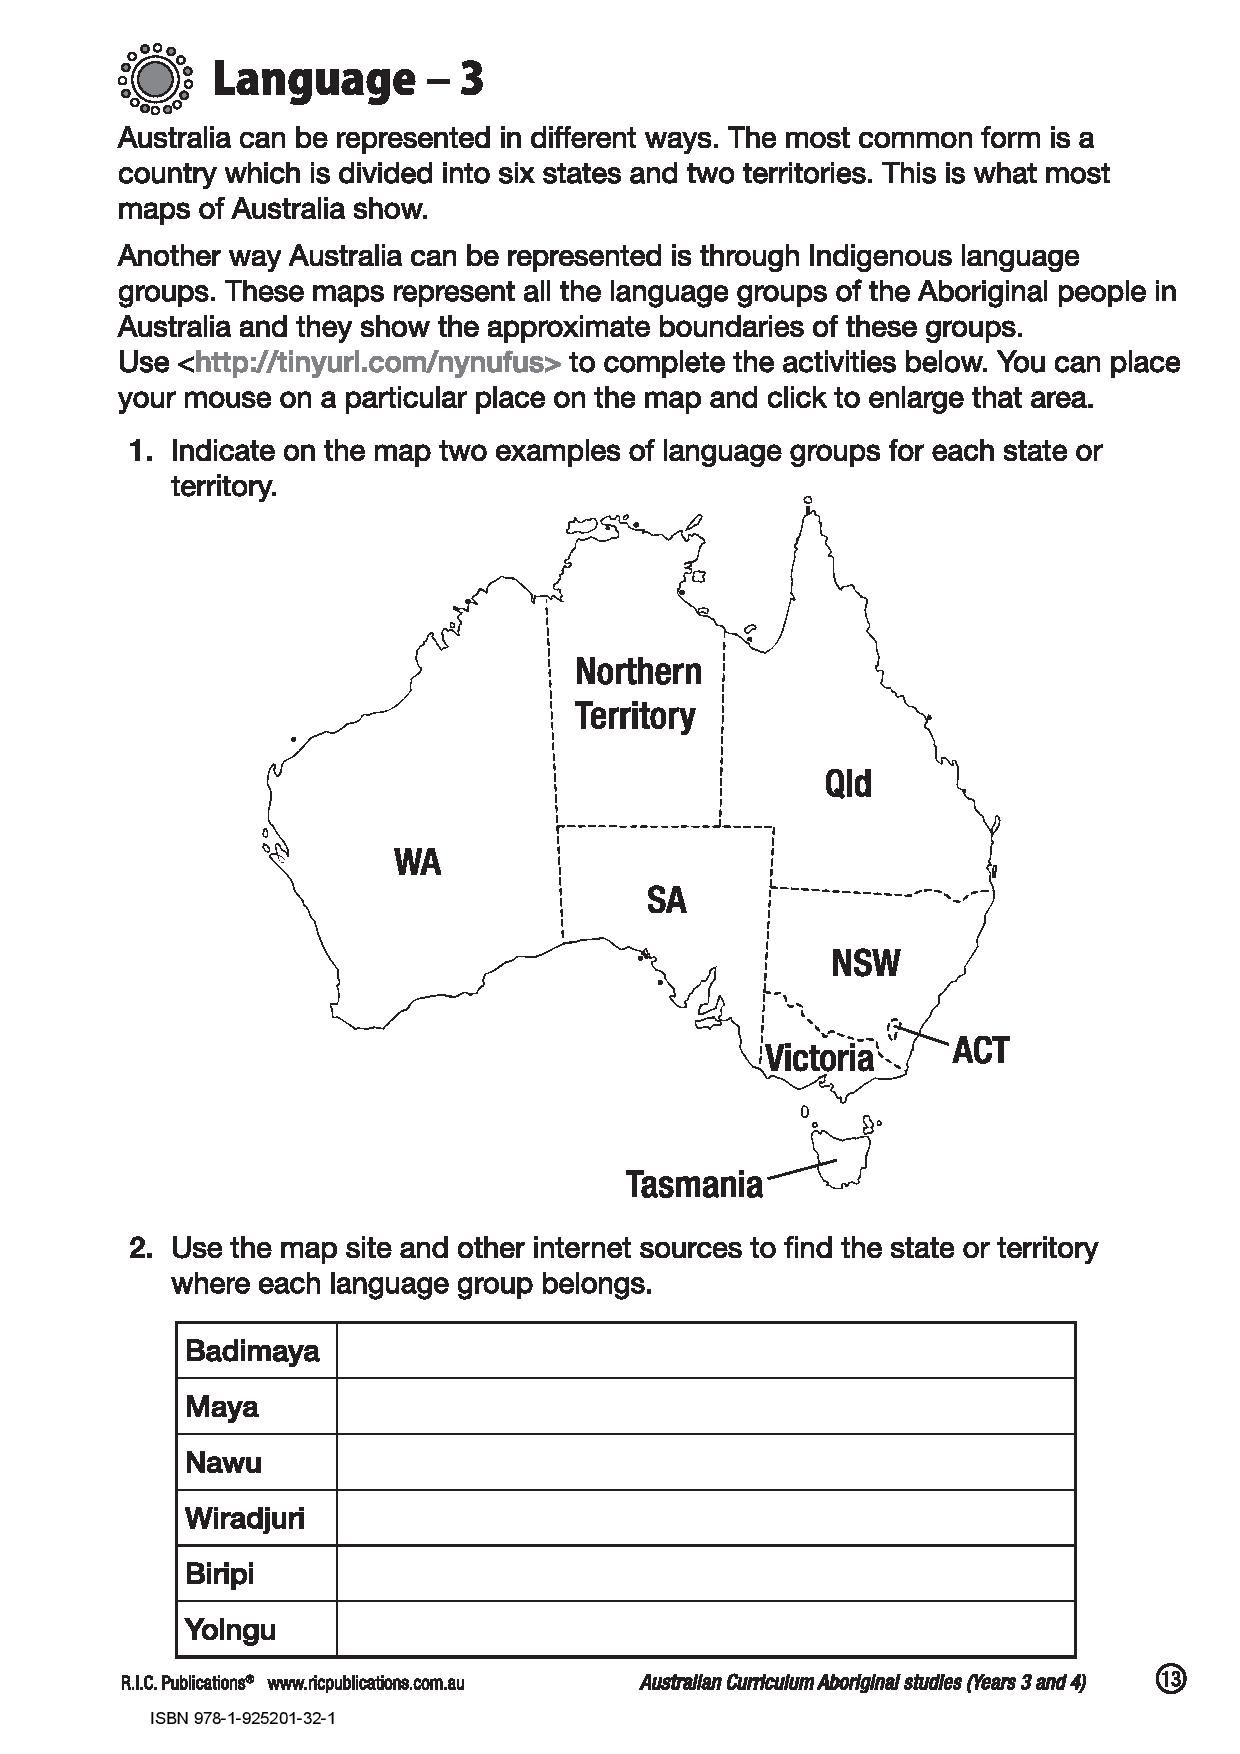 Australian Aboriginal Languages Activity Free